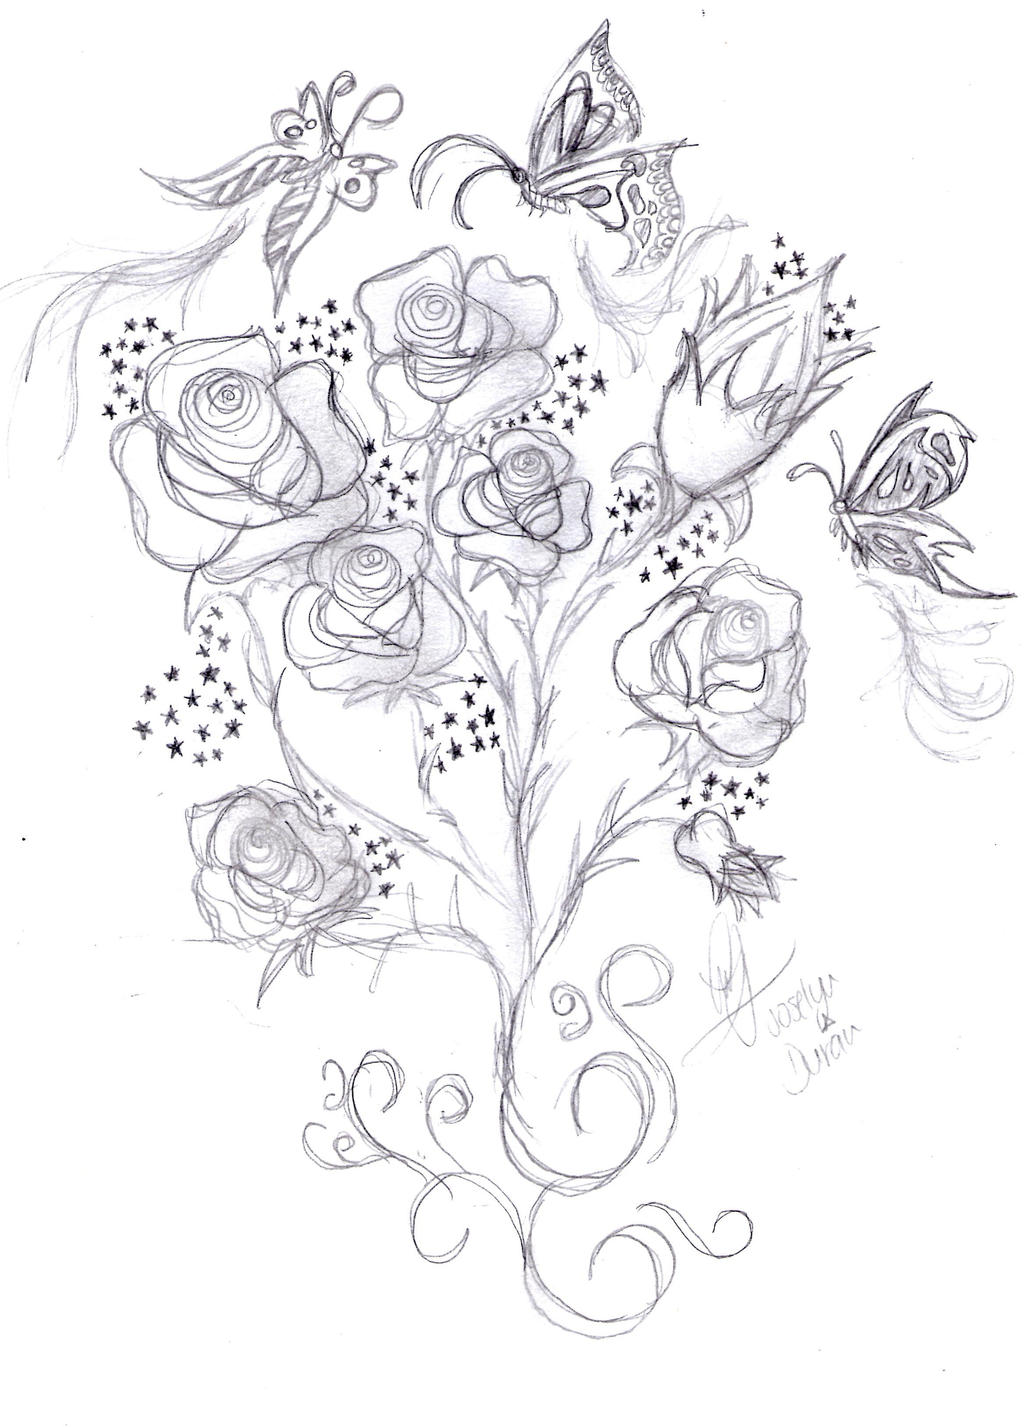 Butterfly and rose drawing - photo#25